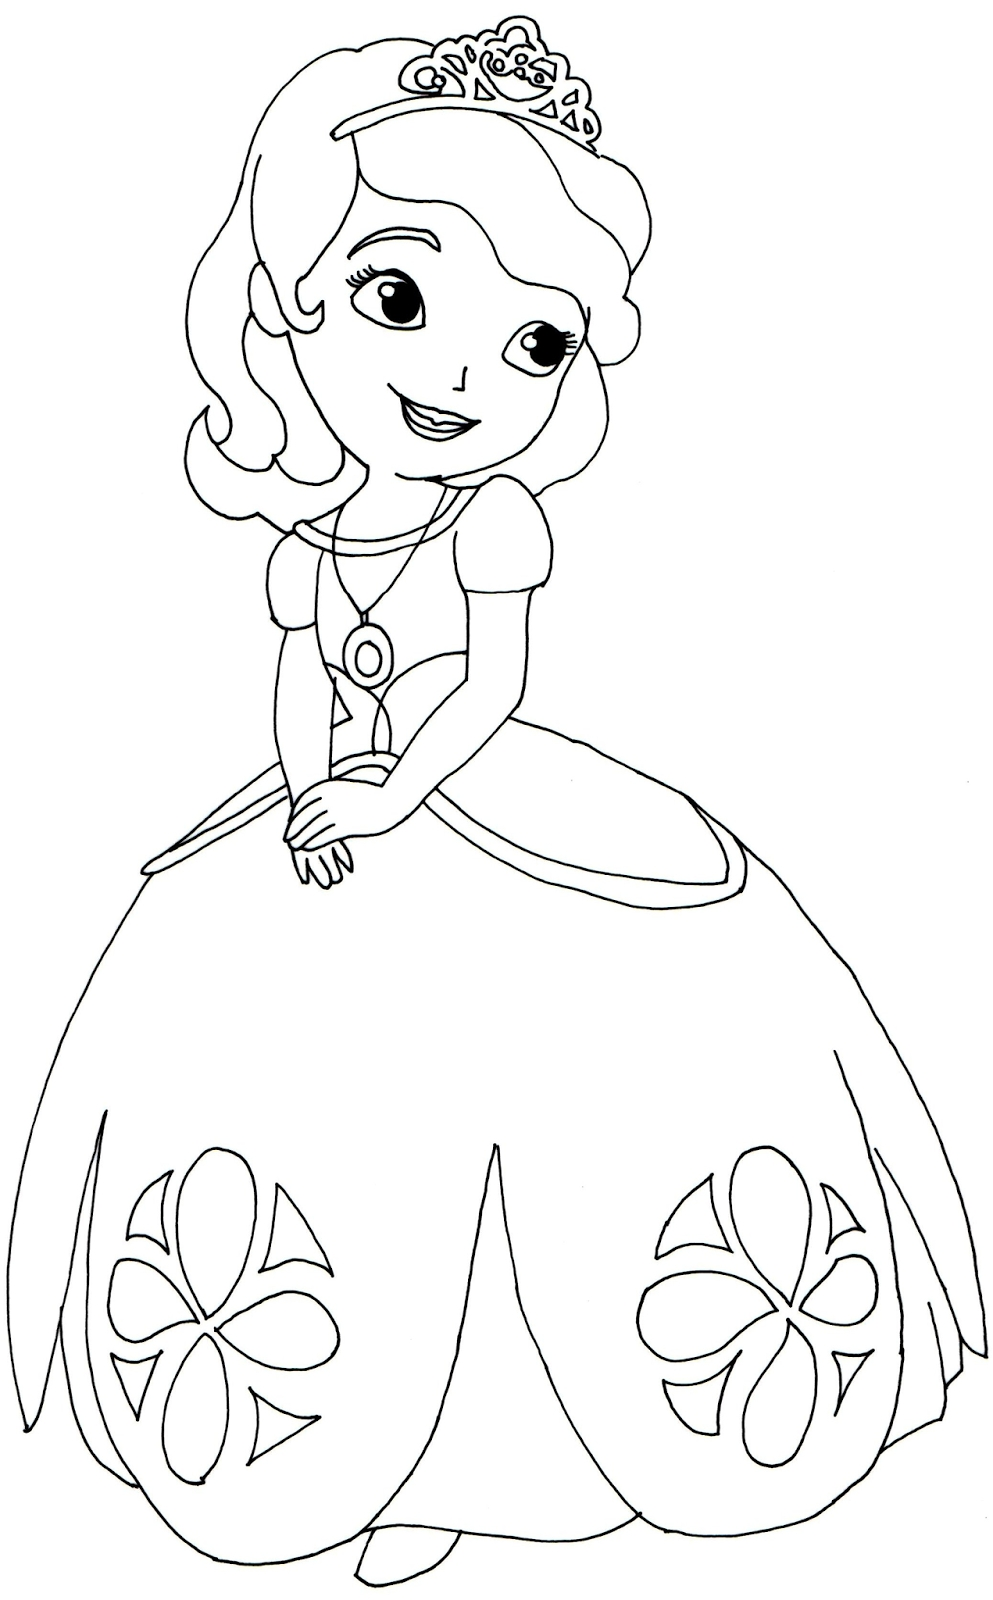 sofia coloring pages - sofia first coloring page